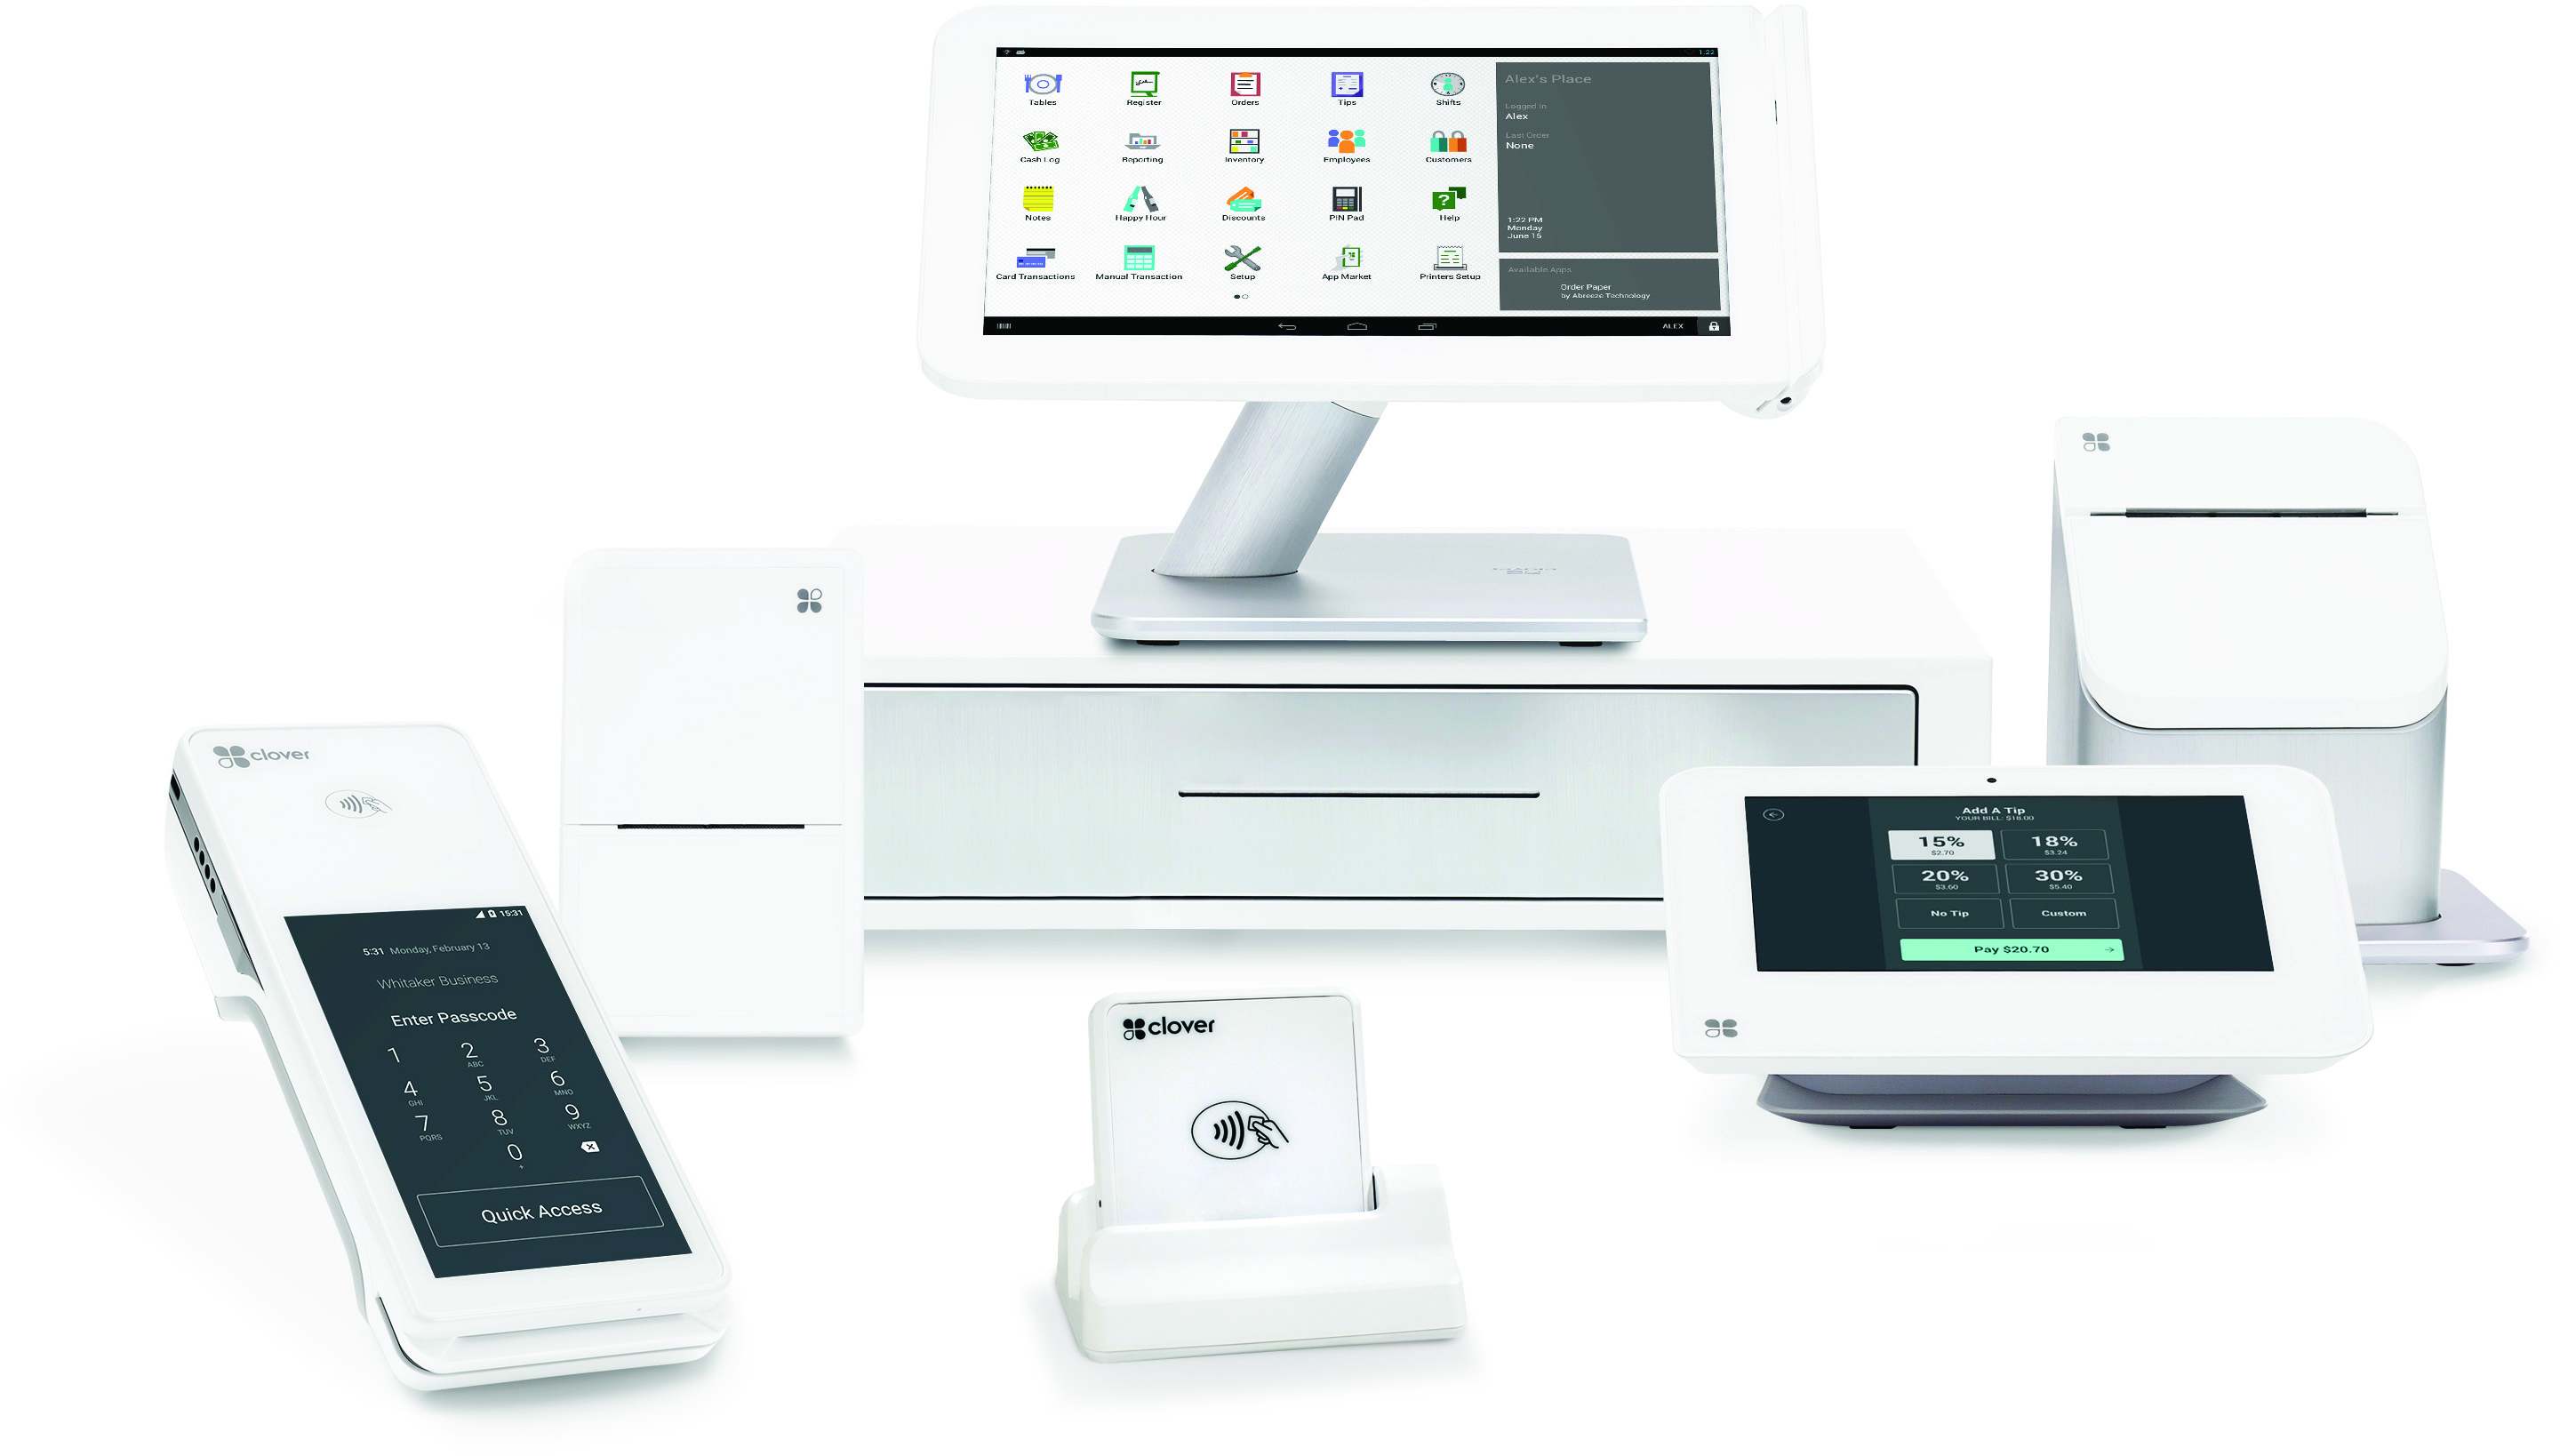 Best Uses of the Clover Point of Sale System